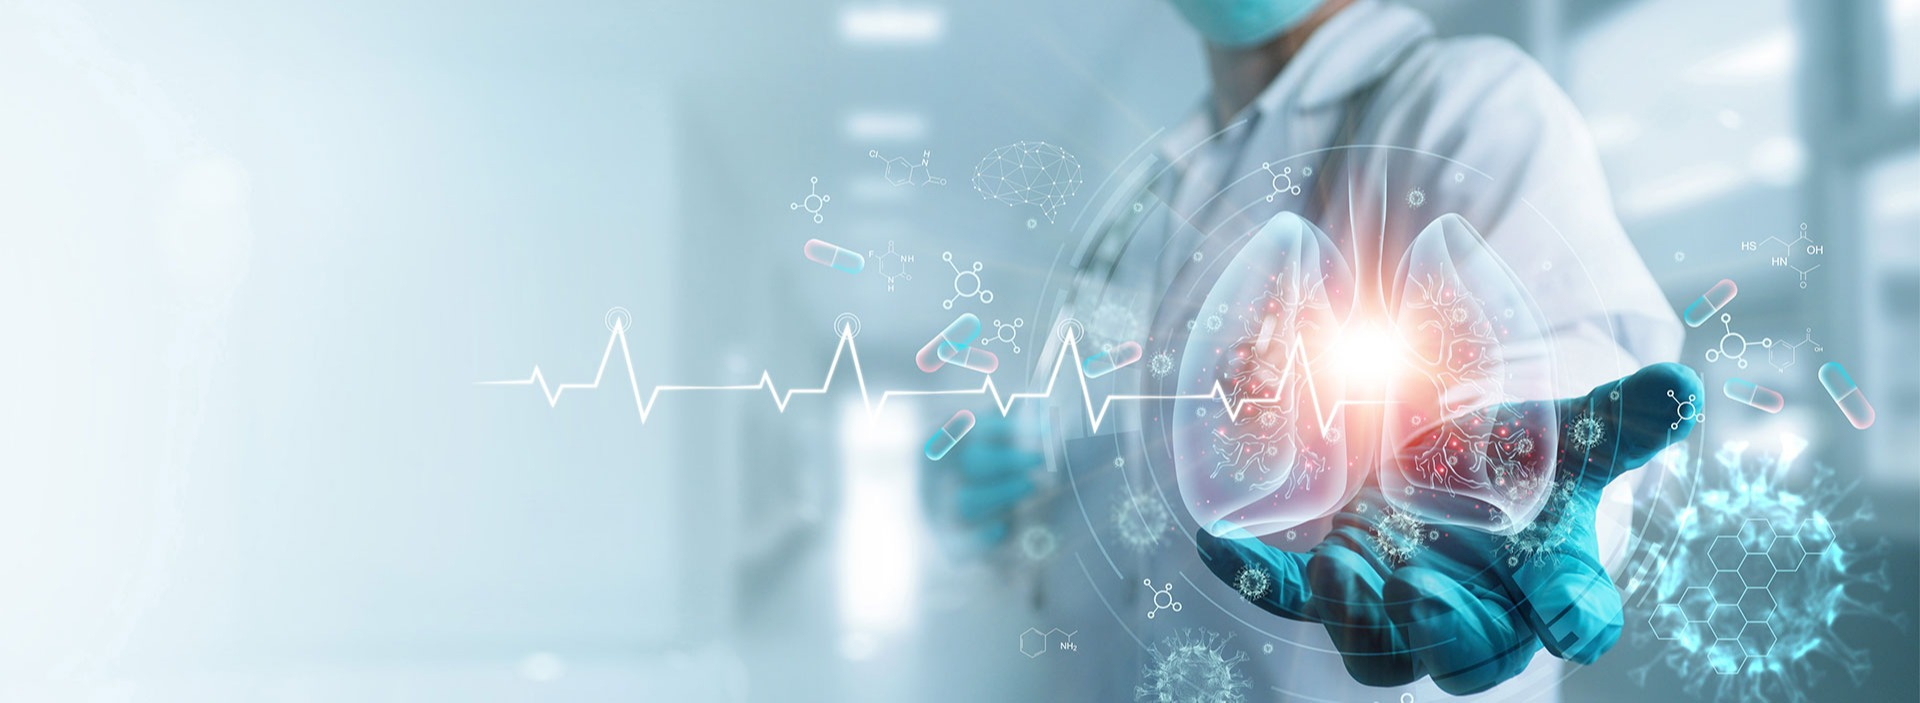 Top 10 machine learning applications in healthcare